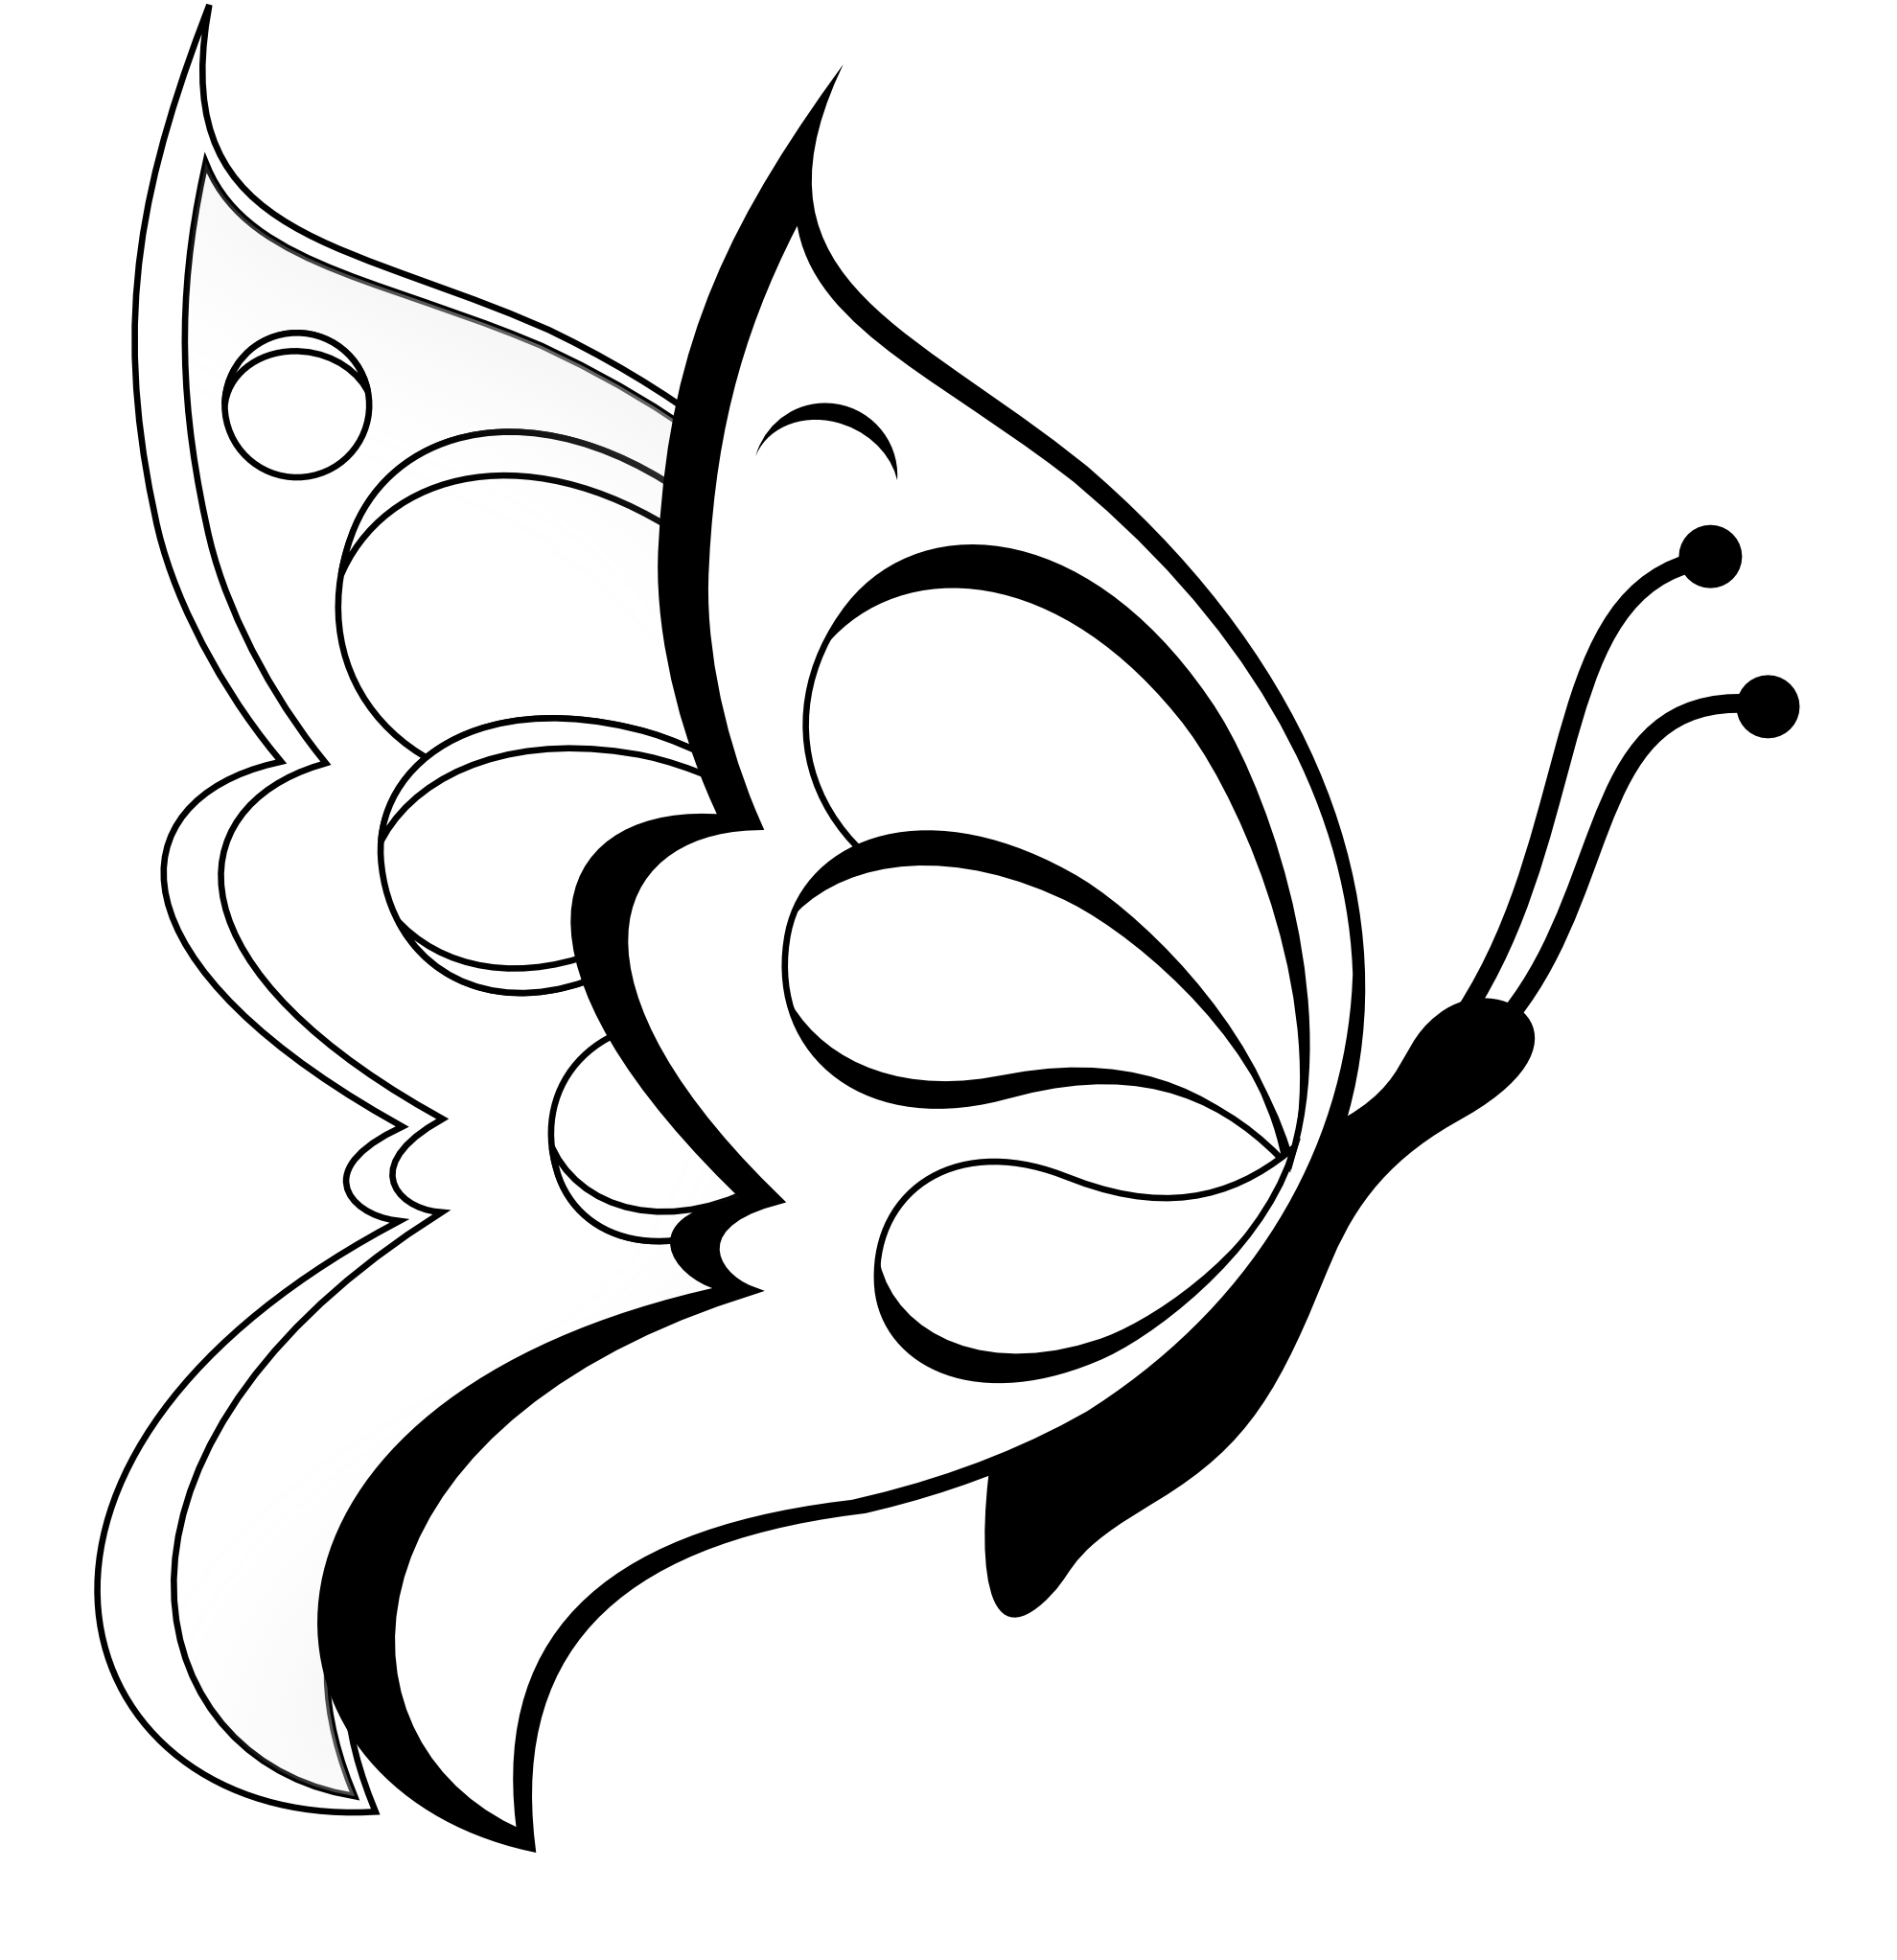 butterfly clipart butterfly 19 black white line art coloring sheet rh pinterest com butterflies clipart black and white butterfly clipart black and white free